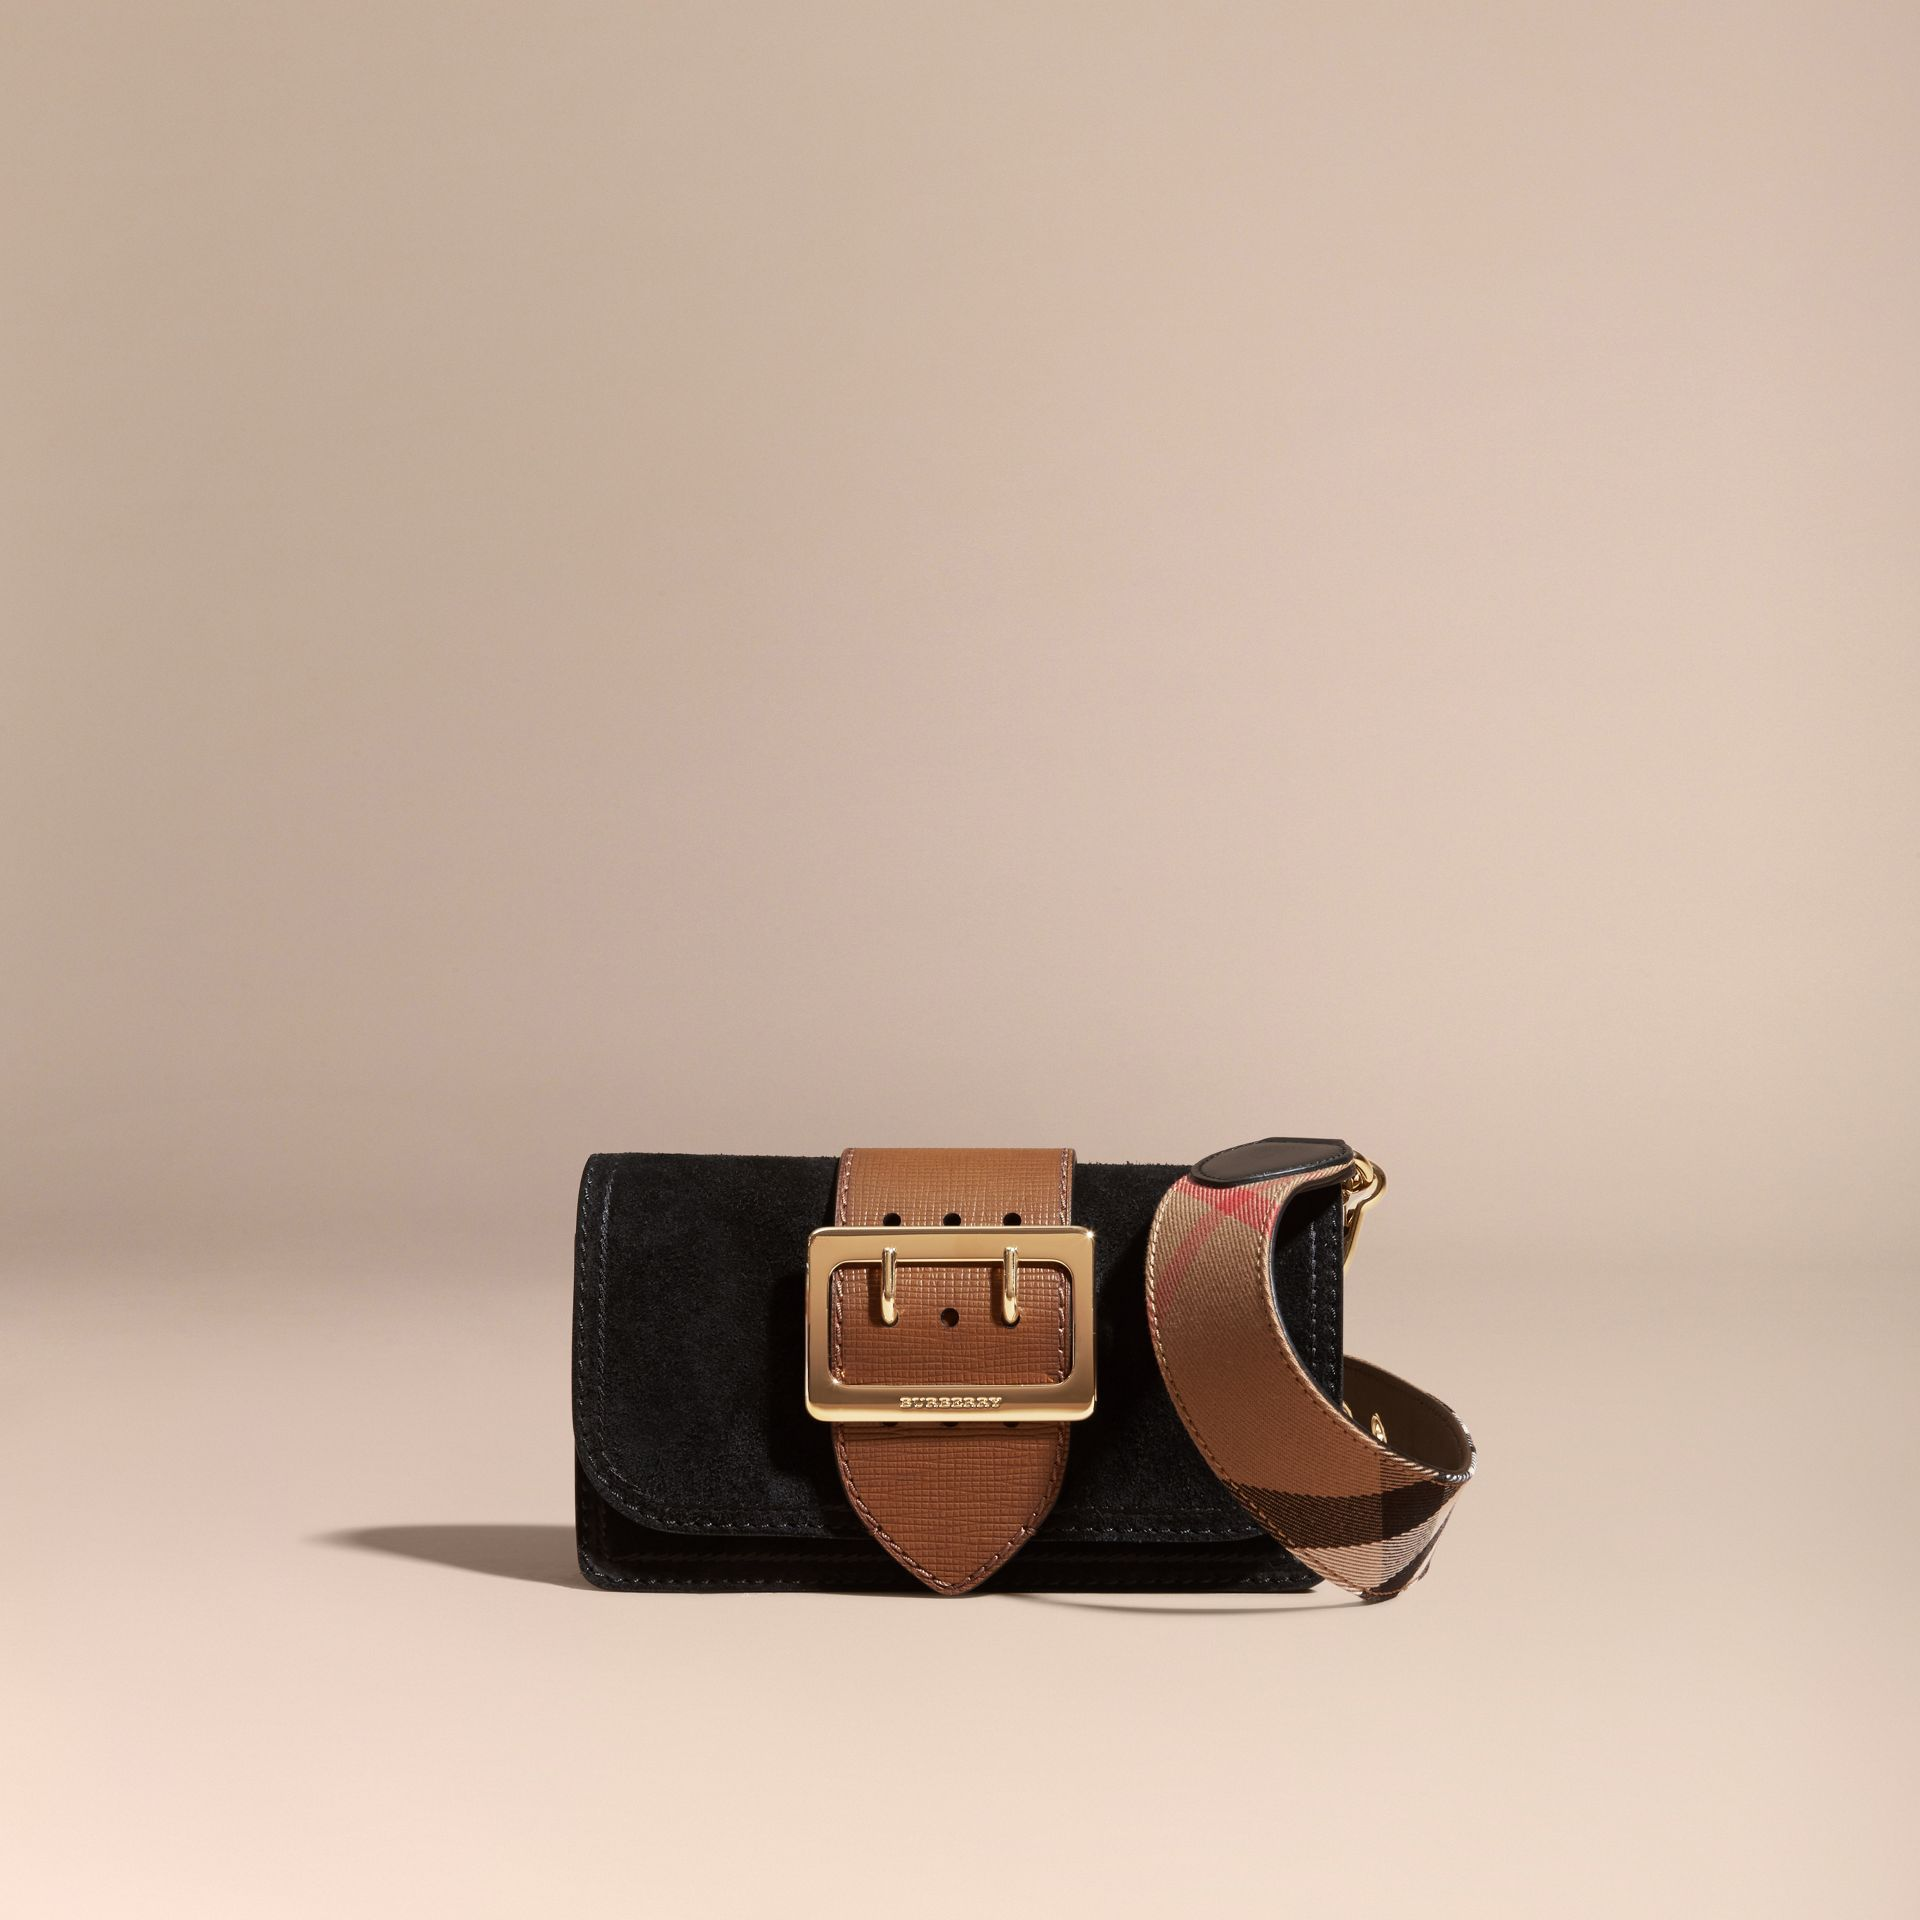 Black / tan The Small Buckle Bag in Suede with Topstitching Black / Tan - gallery image 9